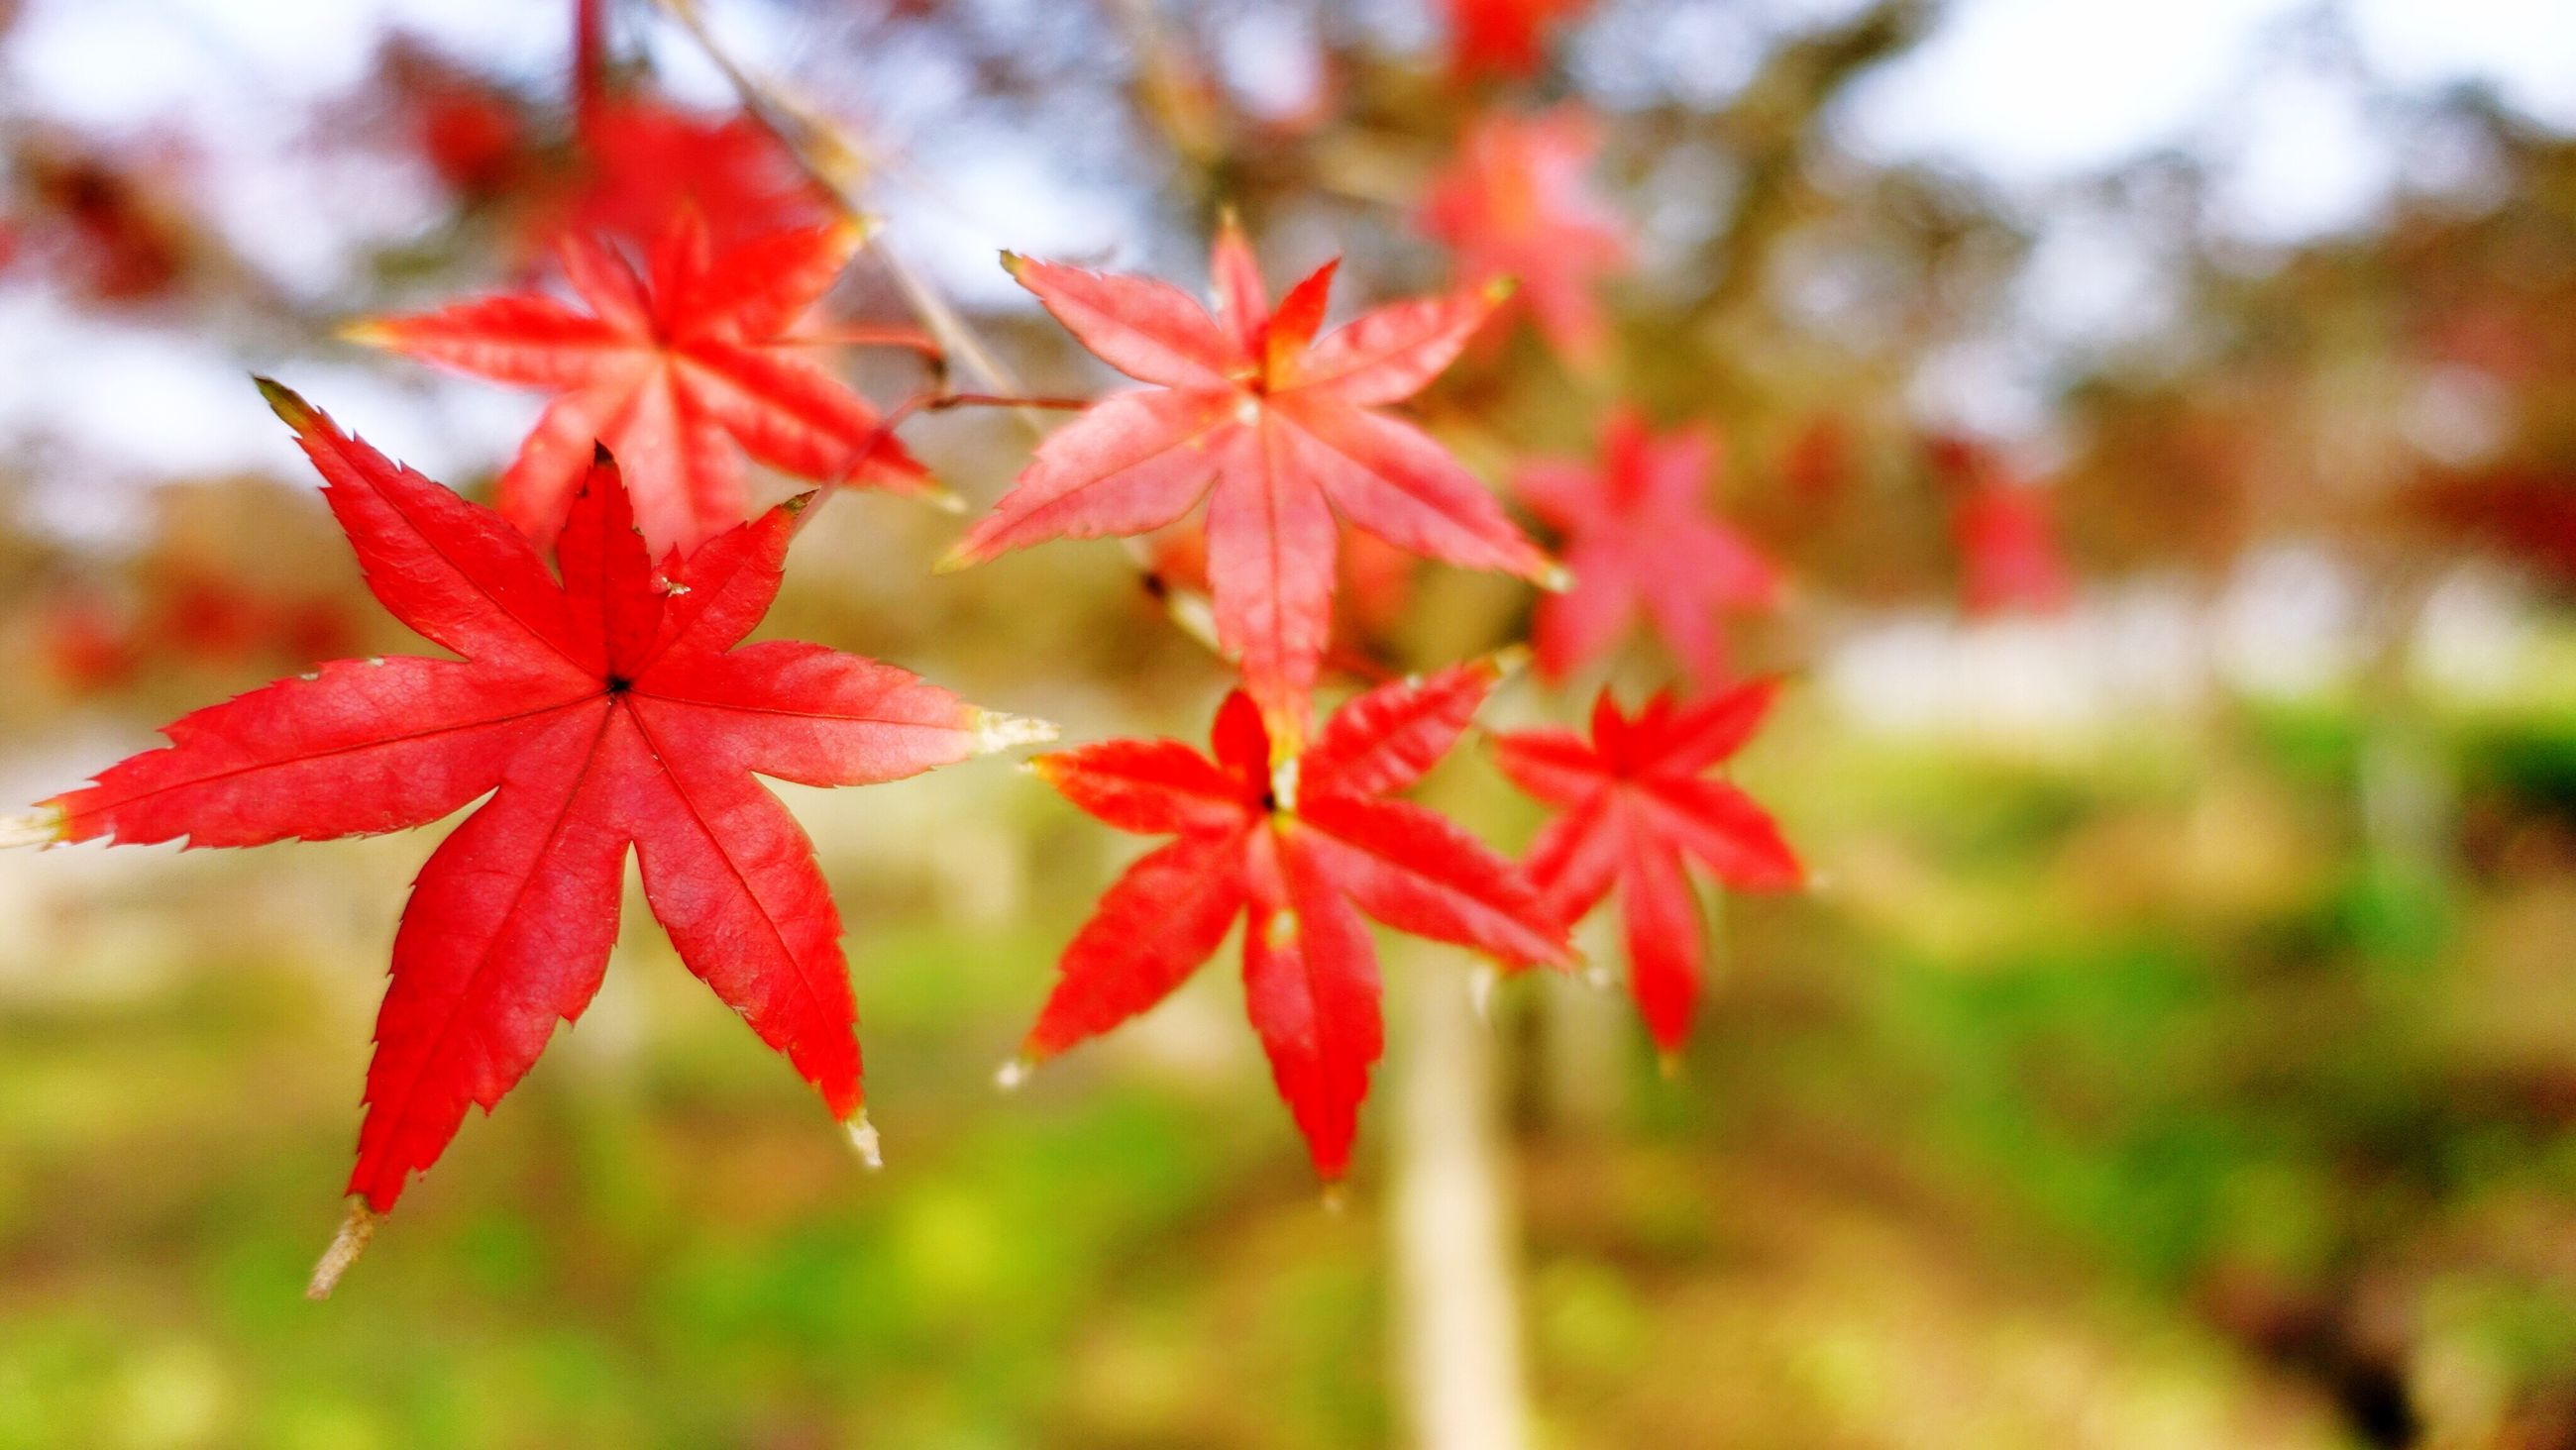 red, growth, close-up, nature, no people, maple leaf, beauty in nature, day, outdoors